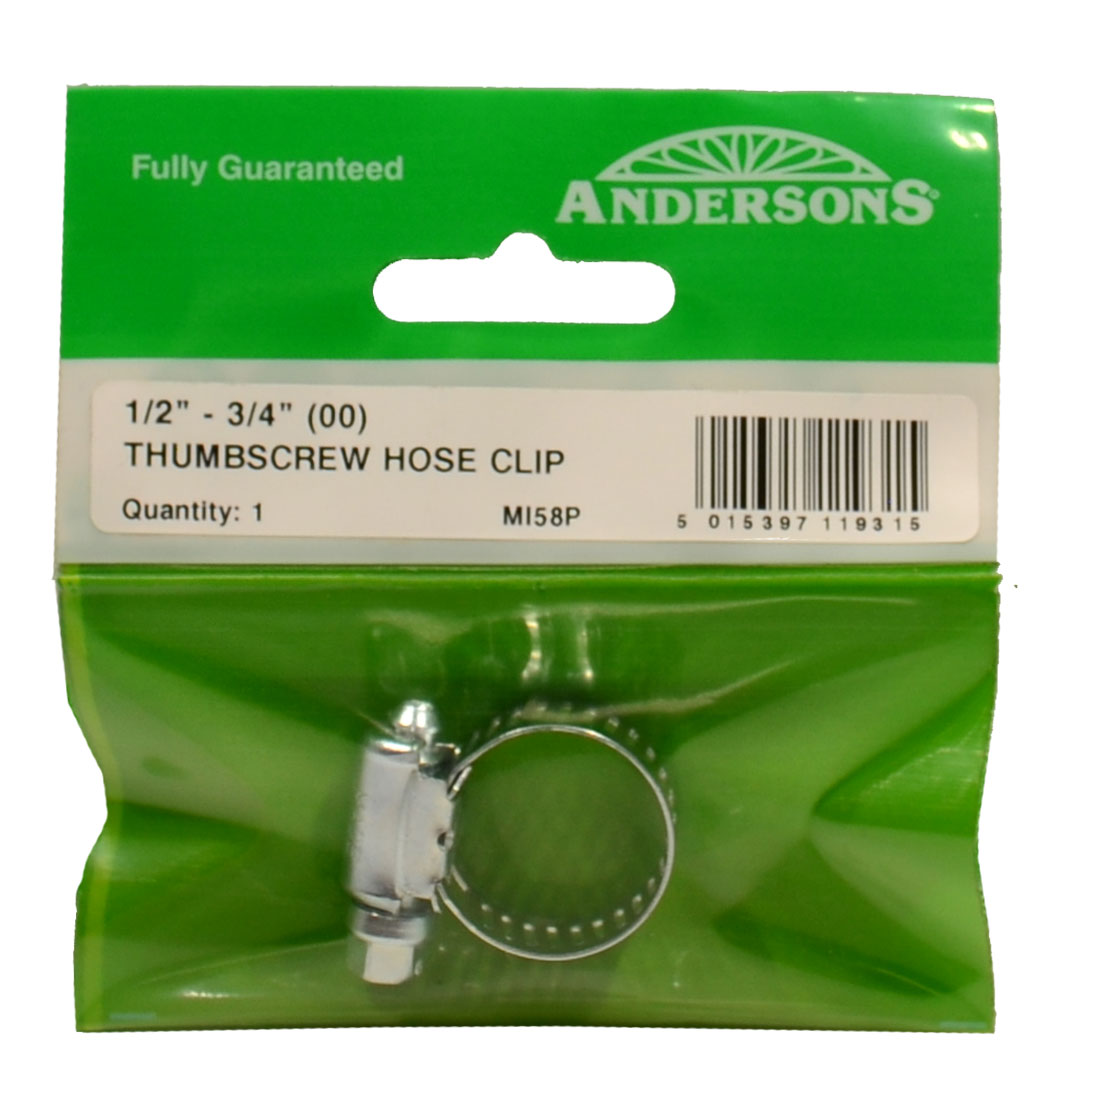 UK Hose & Tool Clips